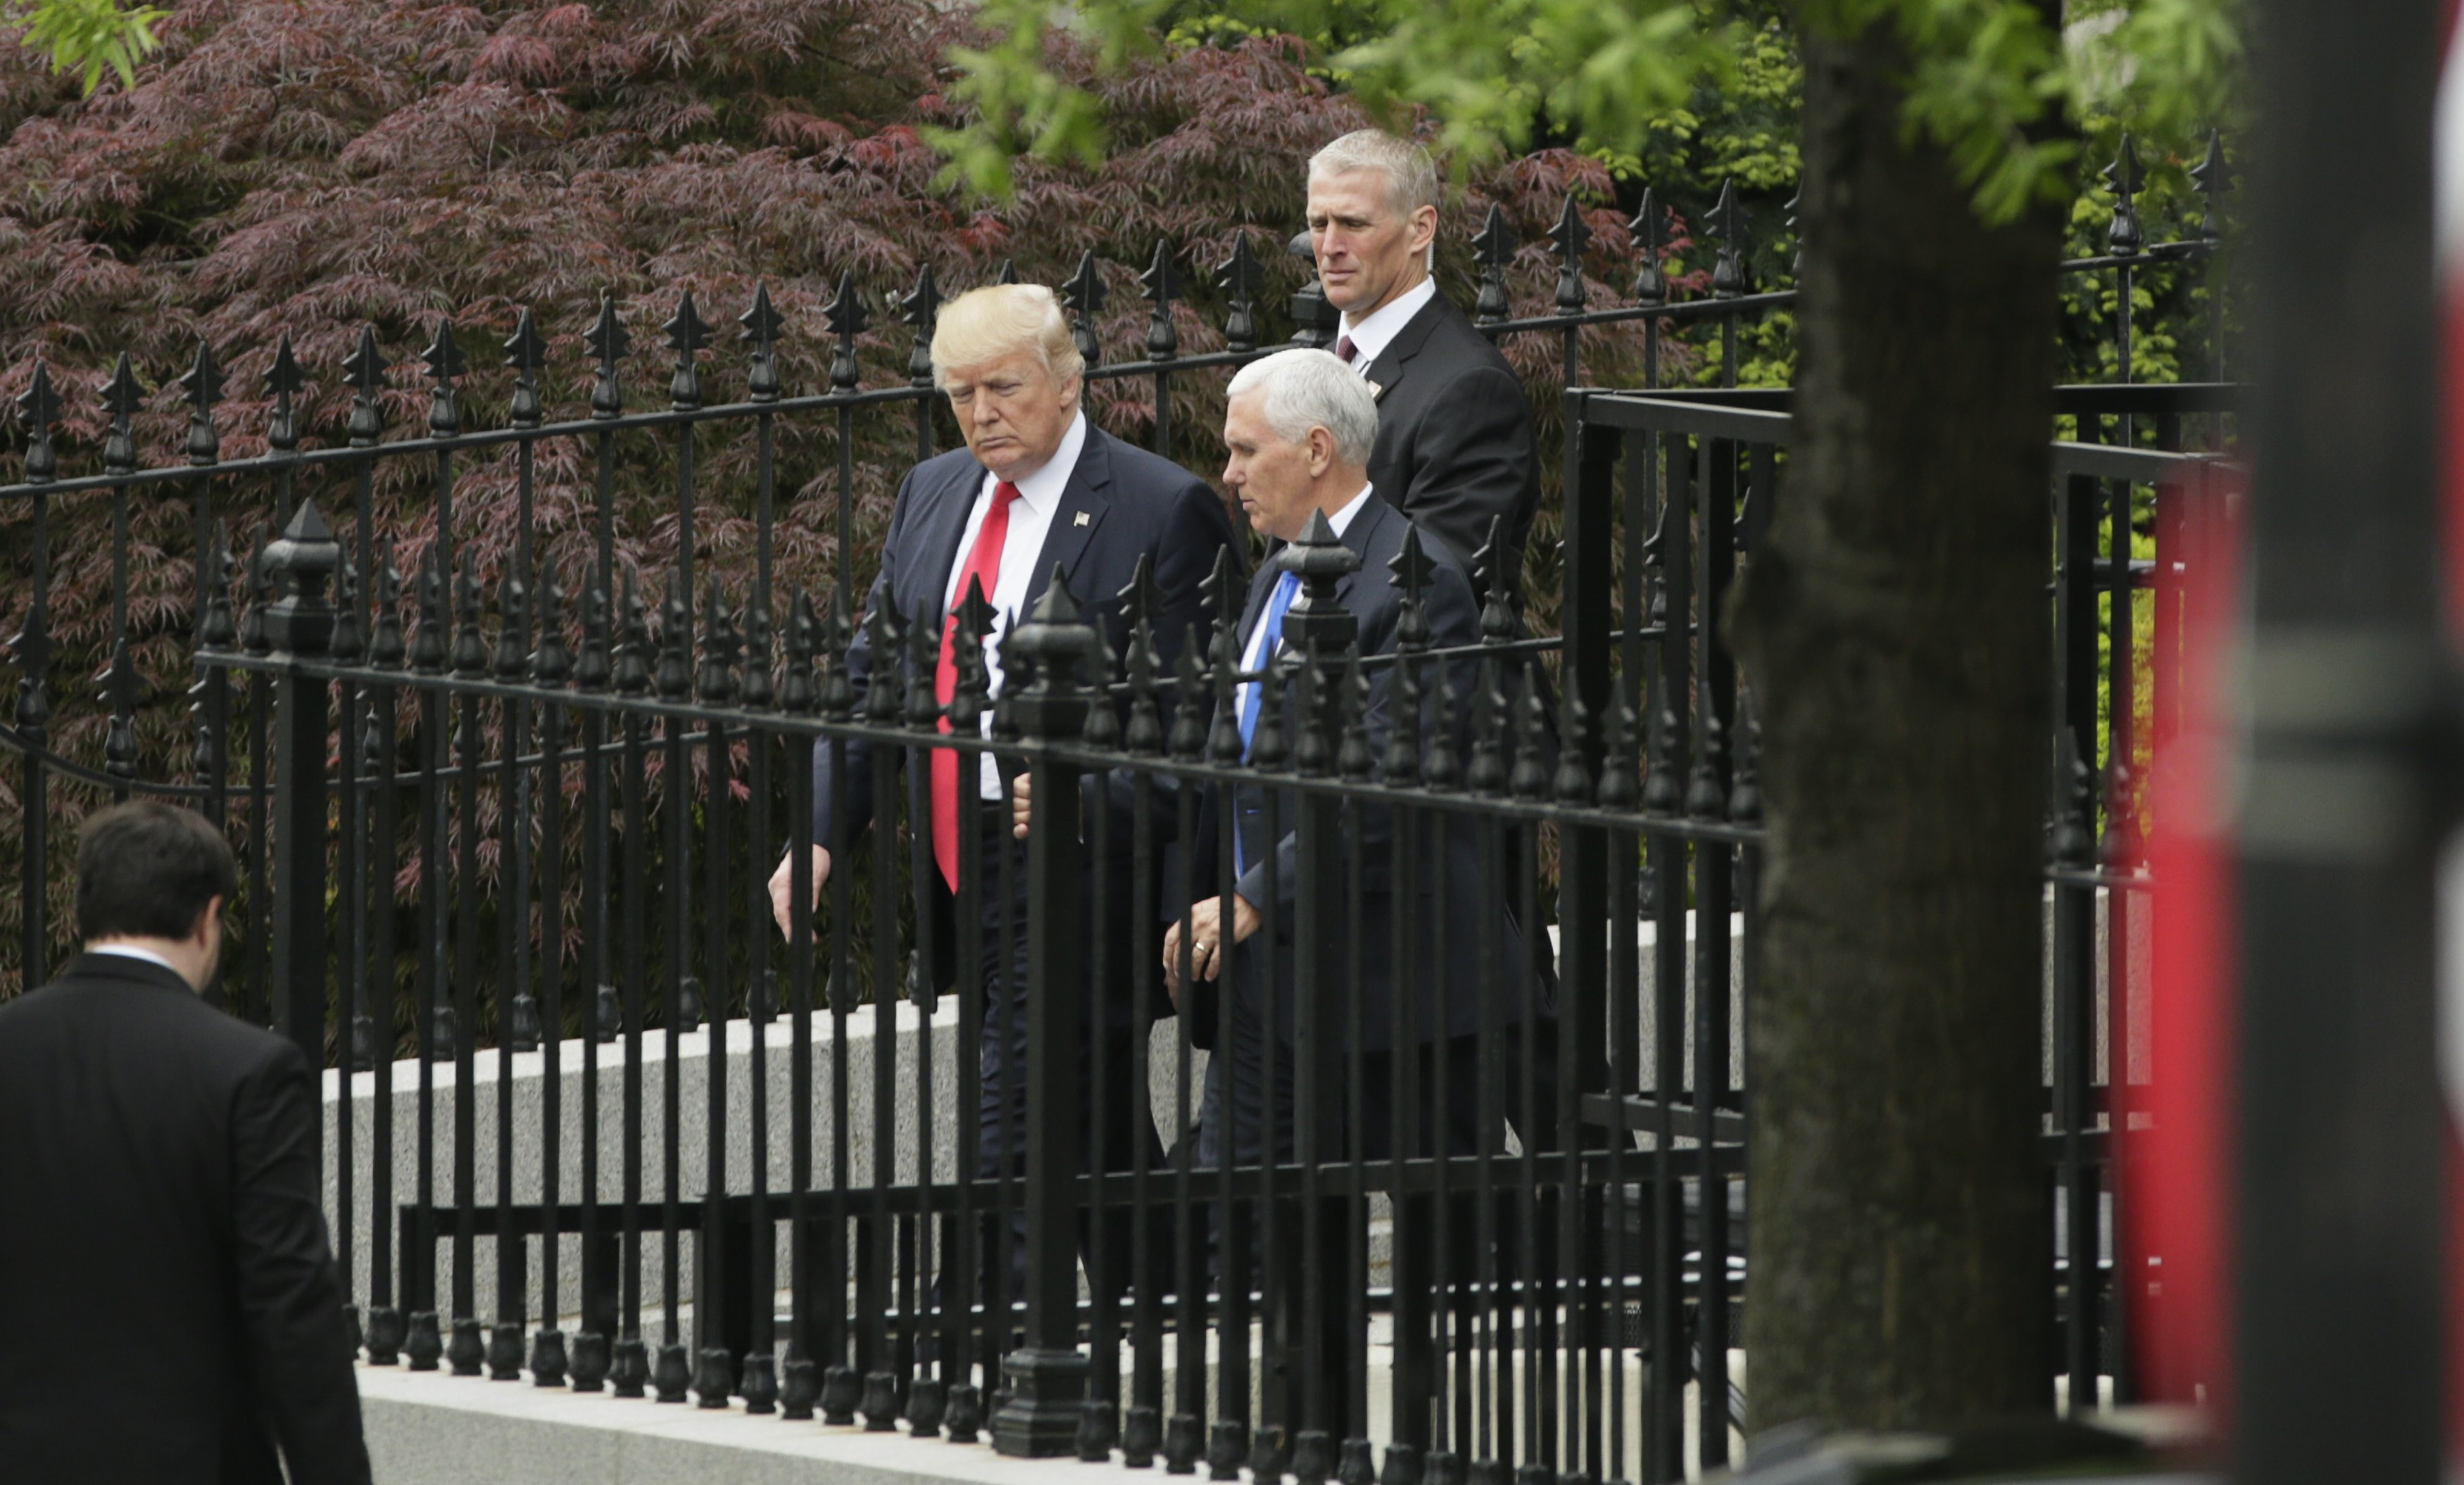 President Donald Trump and Vice President Mike Pence leave a briefing for members of the U.S. Senate on North Korea at the White House in Washington on April 26, 2017. (REUTERS/Kevin Lamarque)